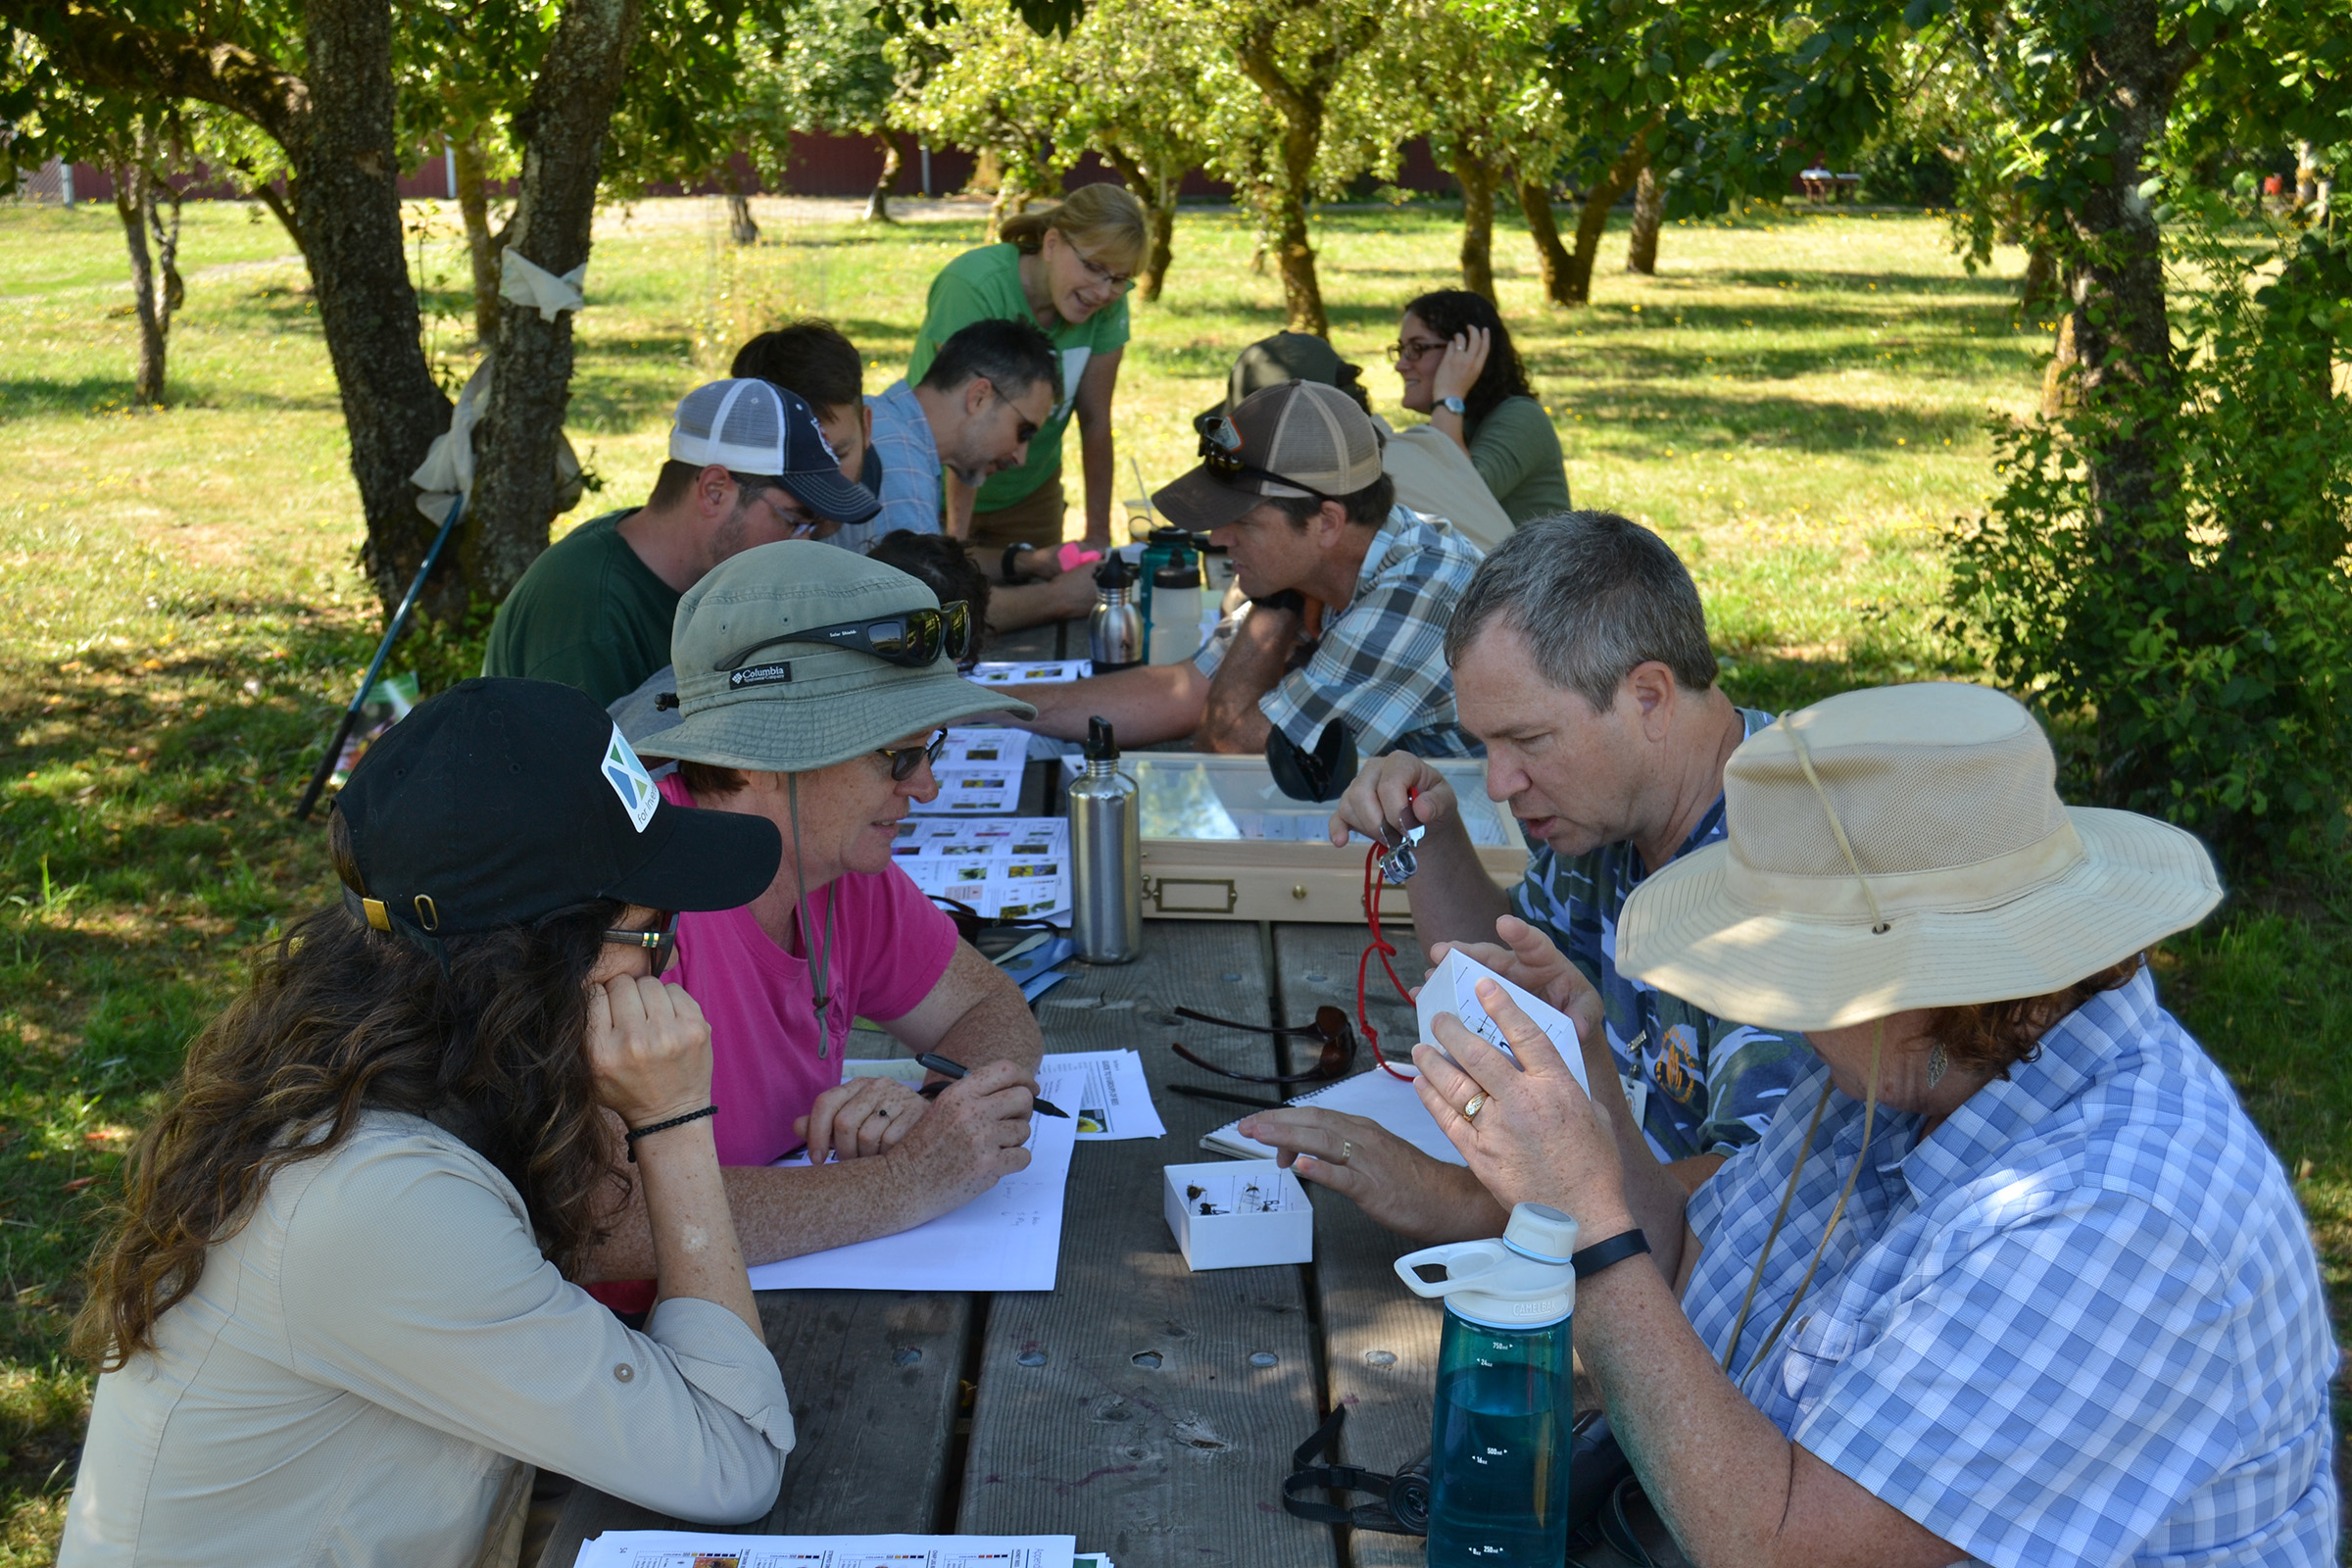 In the dappled shade of an old orchard, a group of people sit round a table looking at and actively discussing native bee specimens